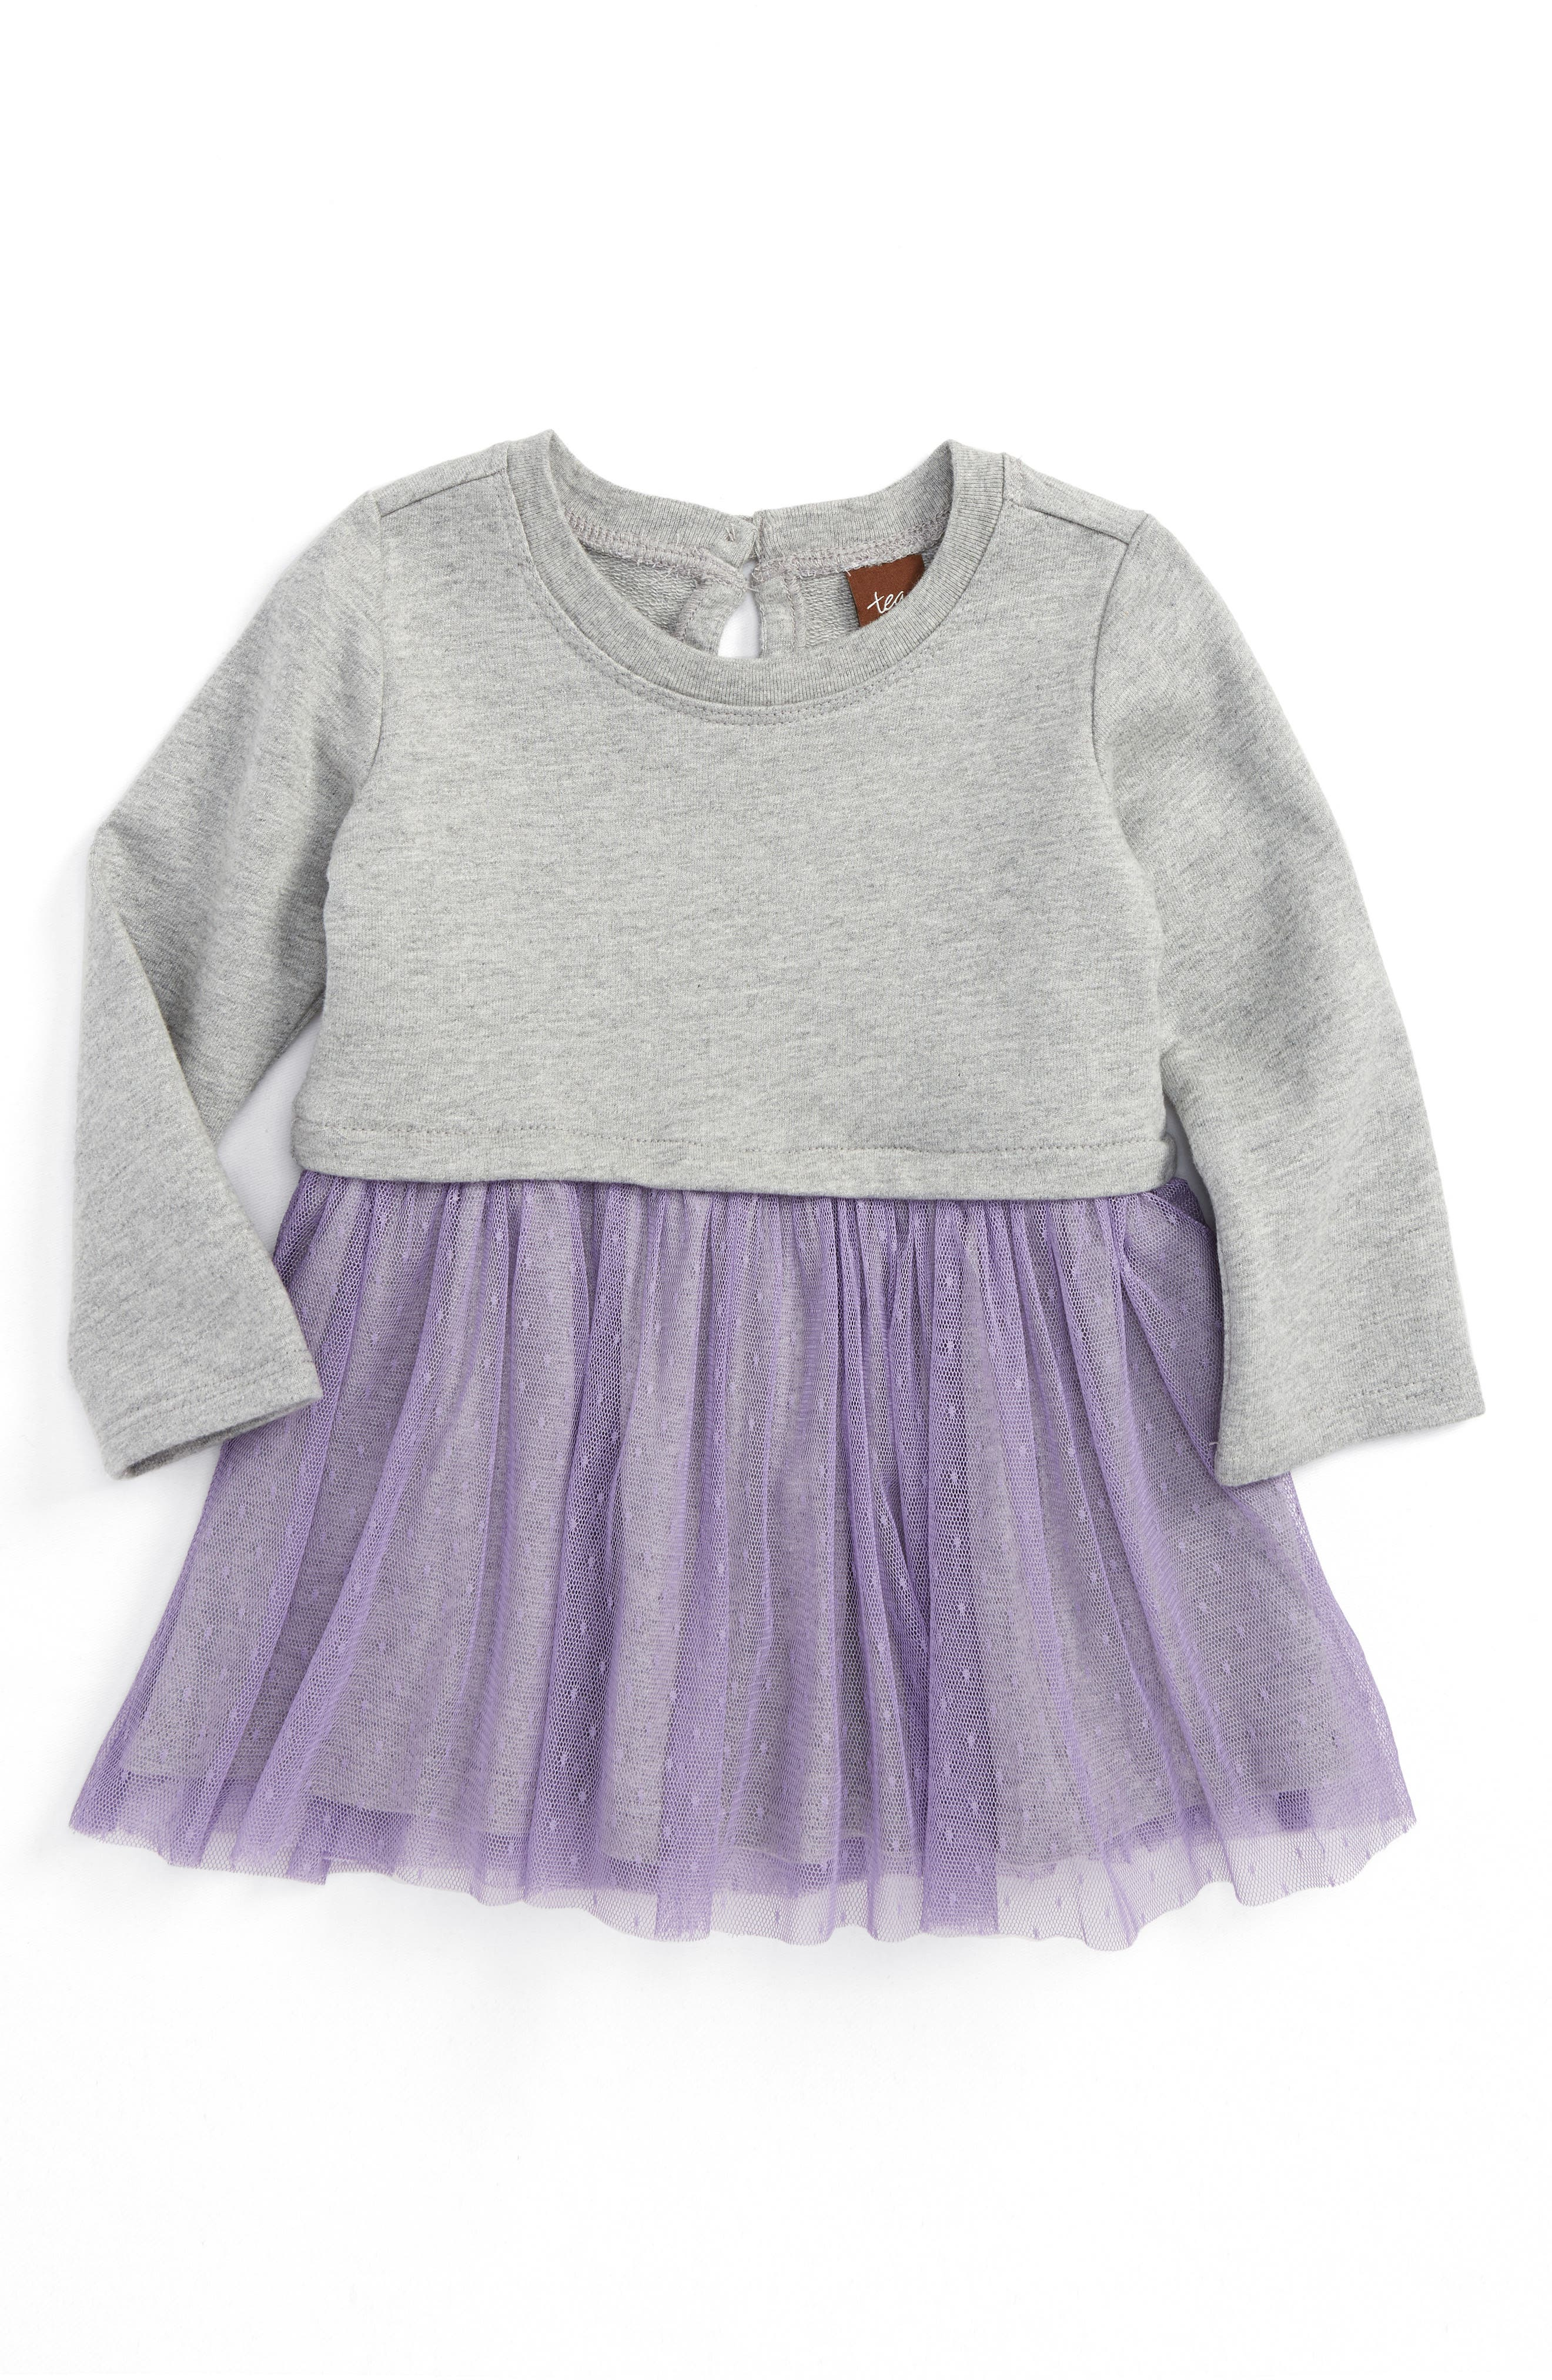 Tulle Skirted Dress,                         Main,                         color, Med Heather Grey